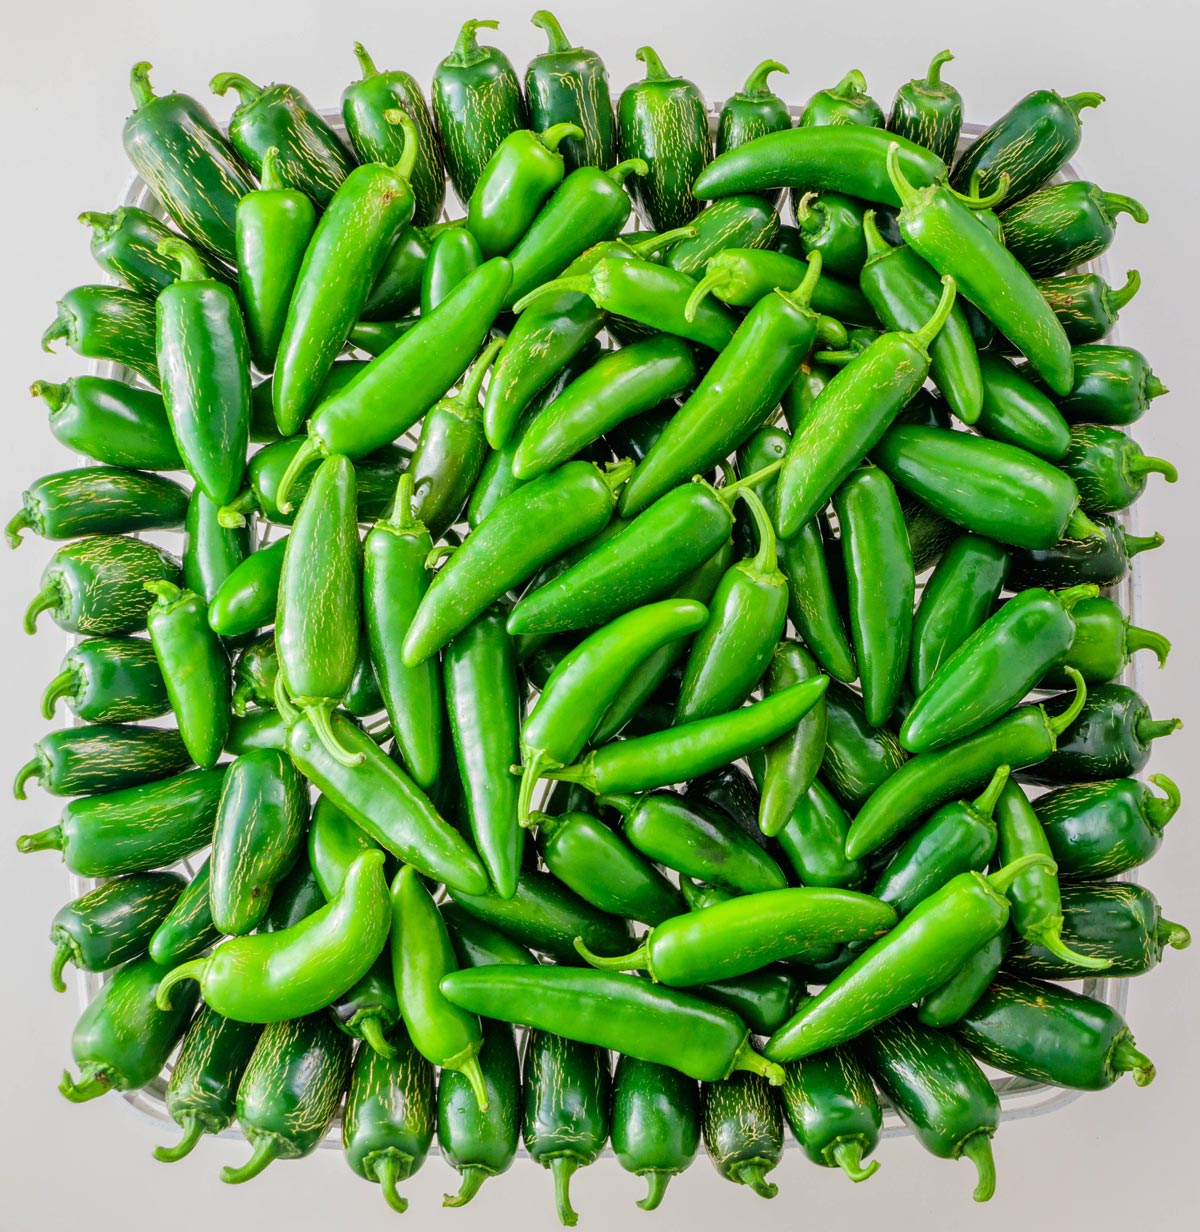 Jalapeno peppers harvested